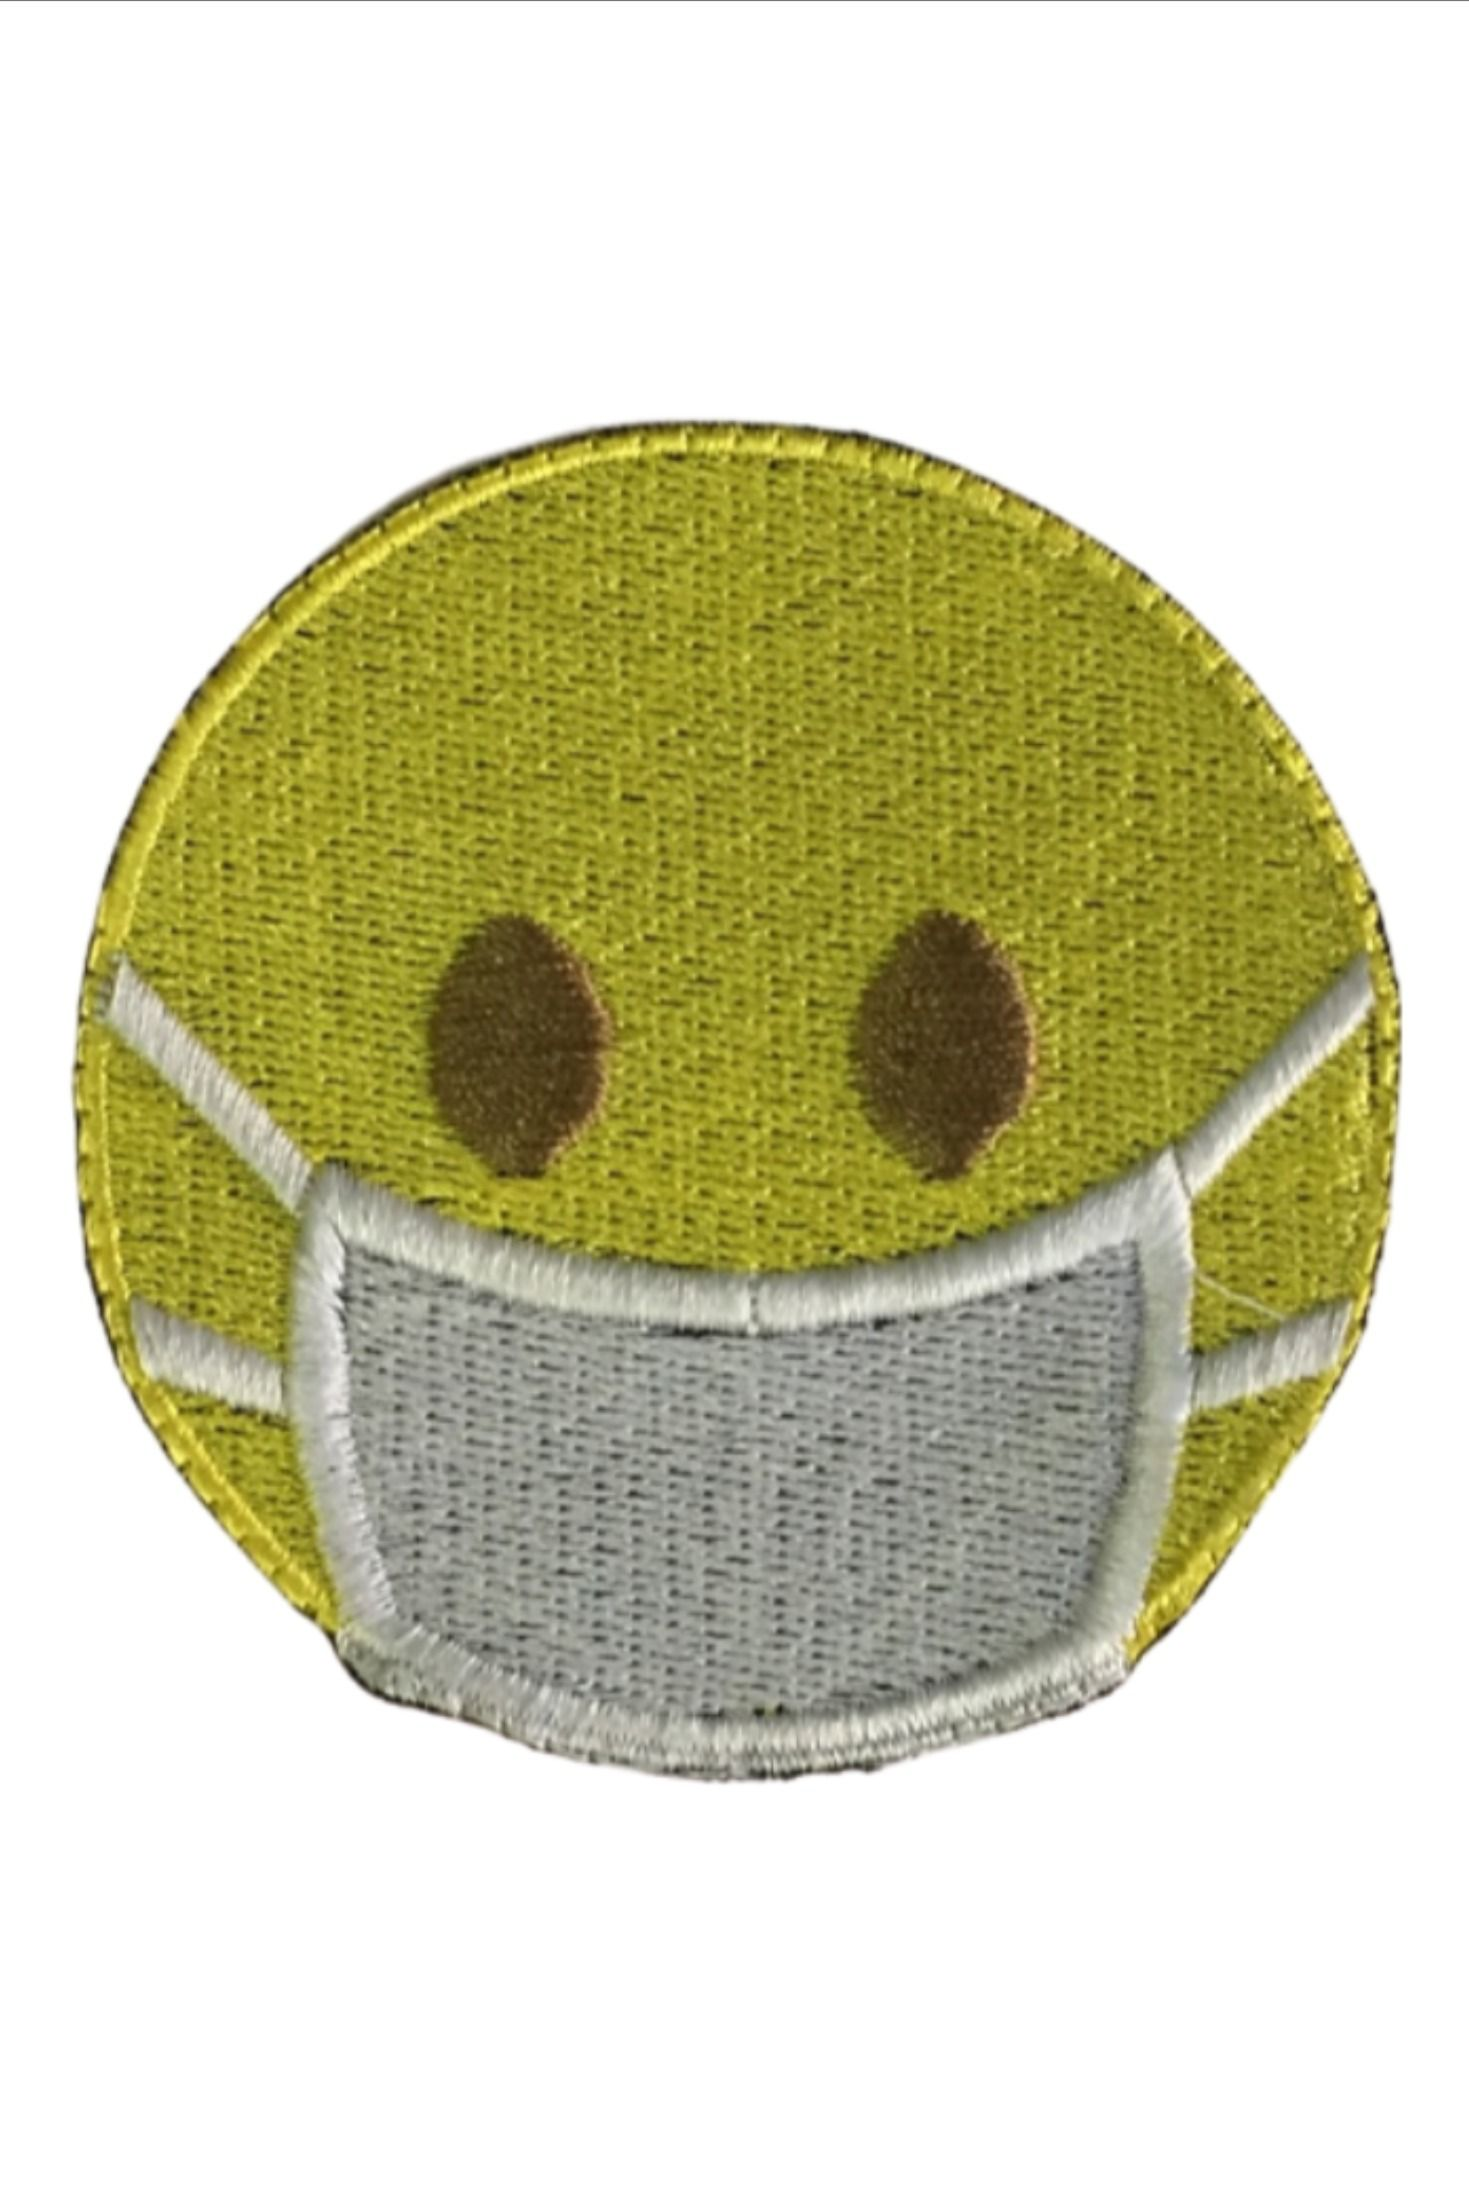 Face Mask Emoji Patch For Jackets Sew On Jeans T Shirt And Backpacks In 2020 Emoji Patch Embroidered Patches Embroidered Design